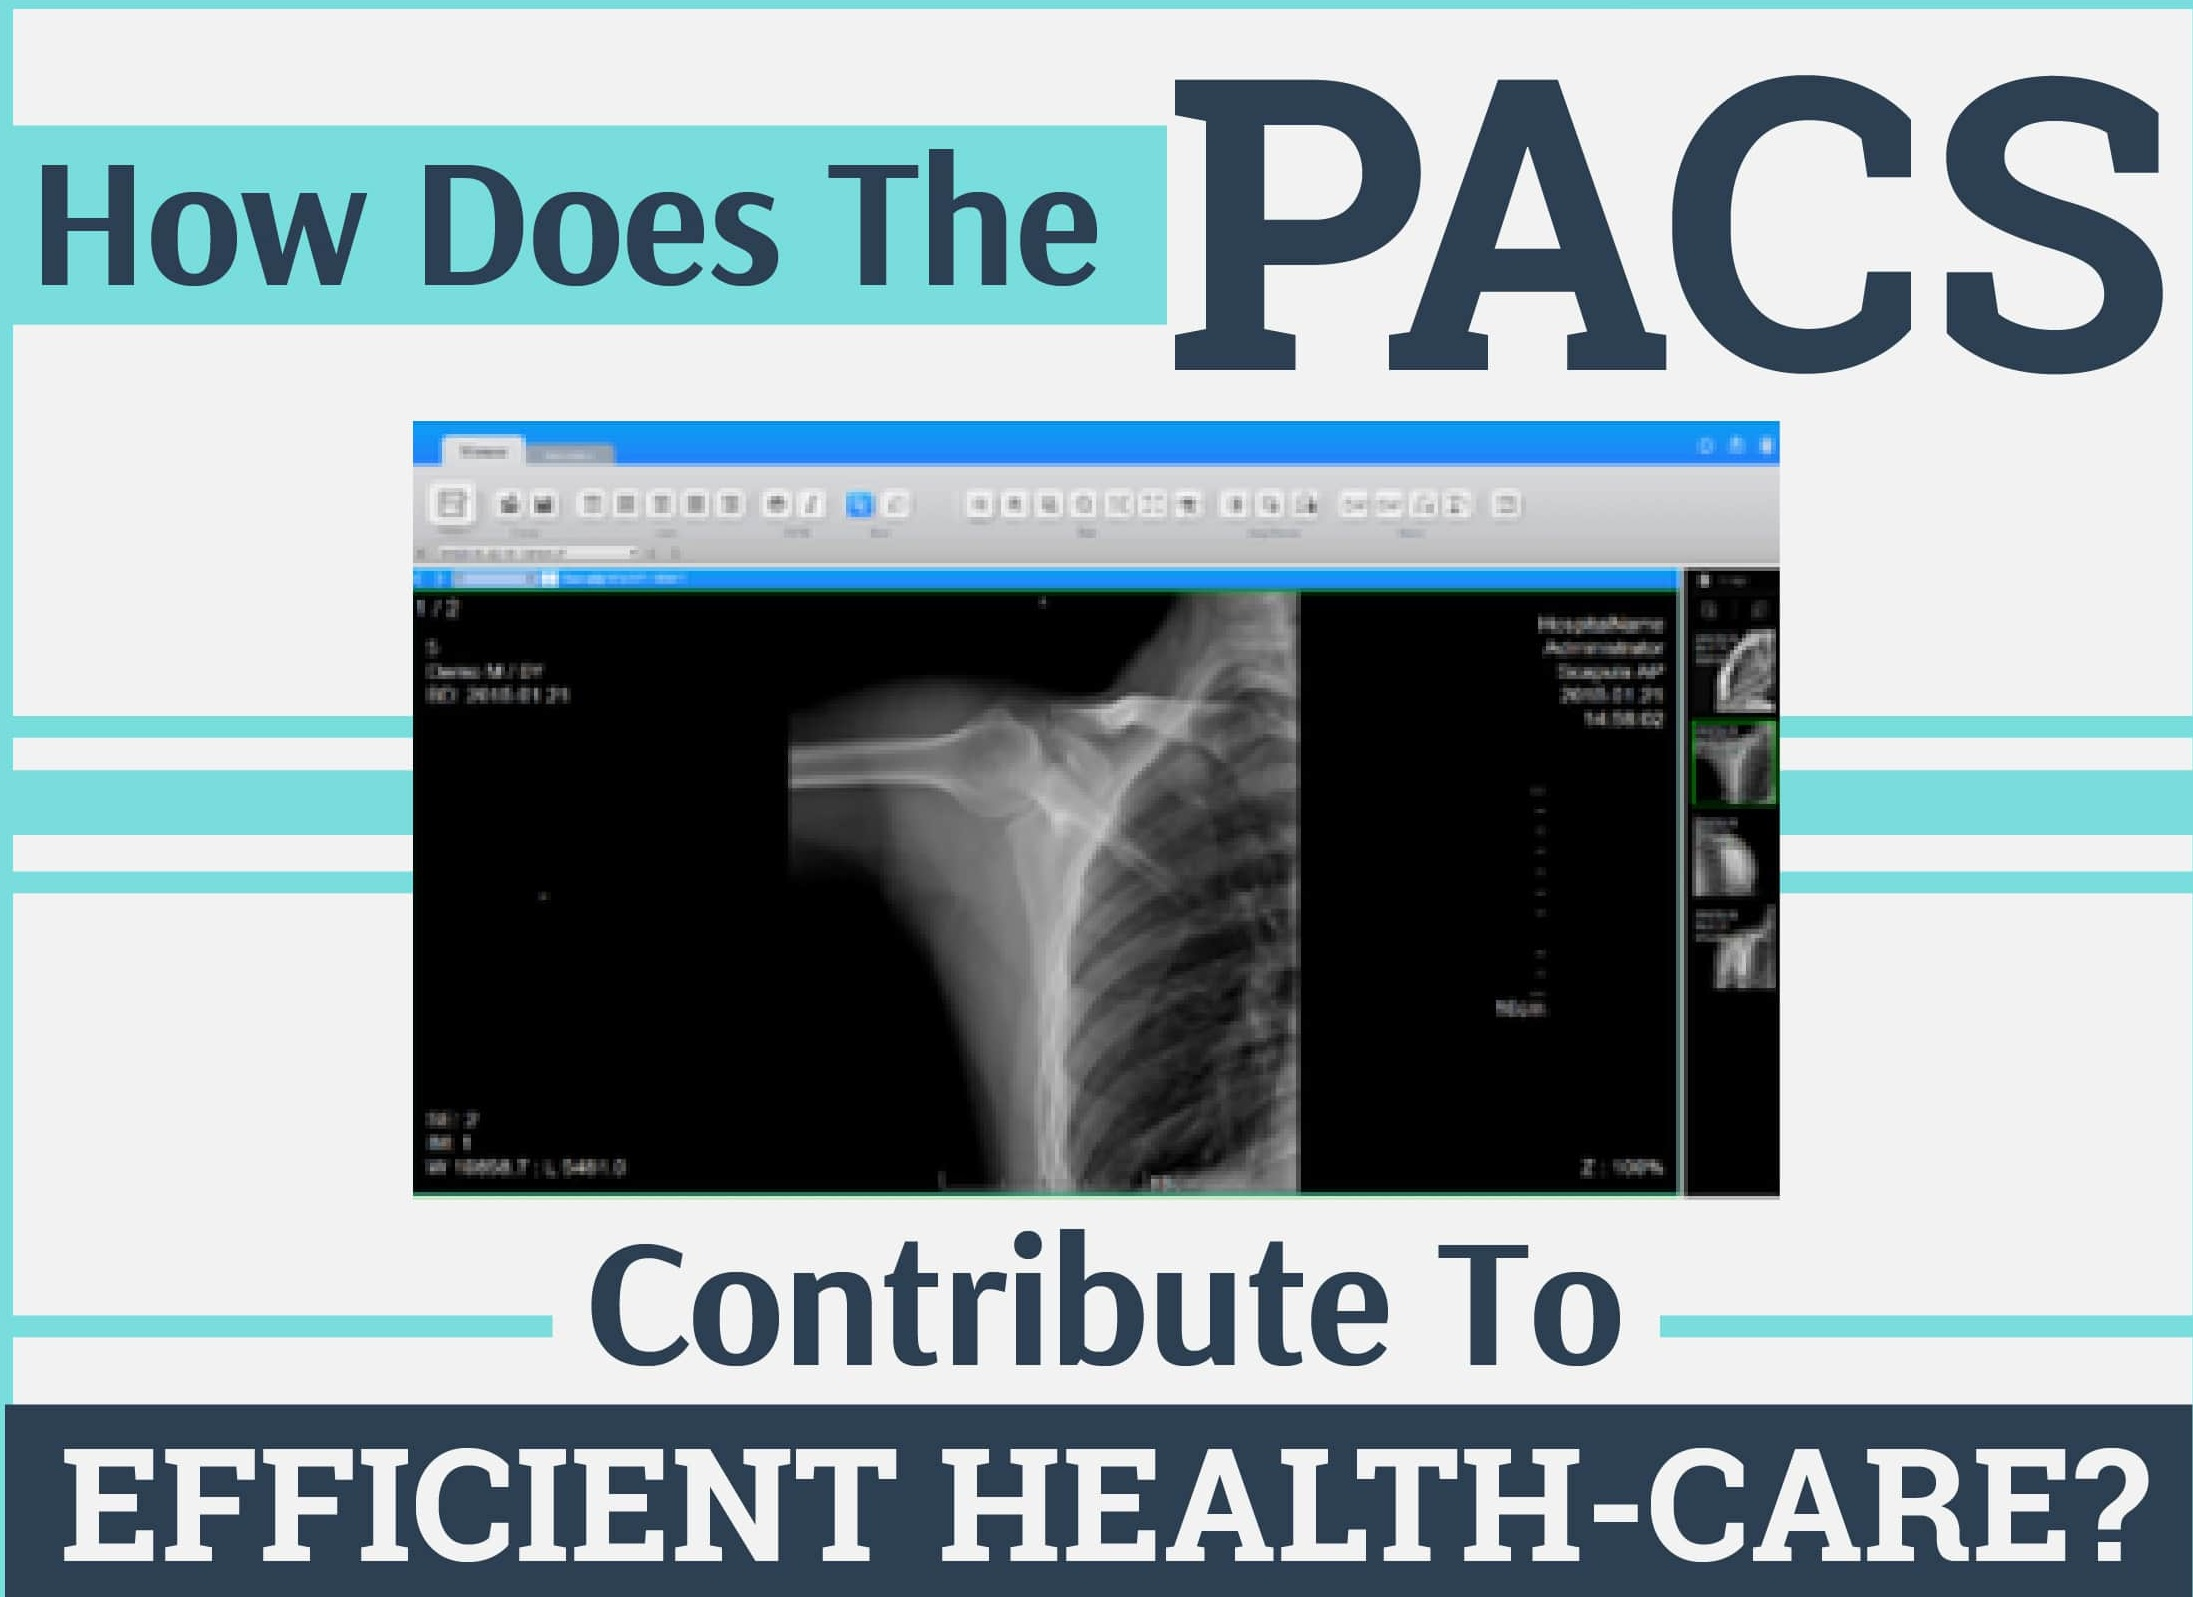 How Does The PACS Contribute To Efficient Health-Care - Copy